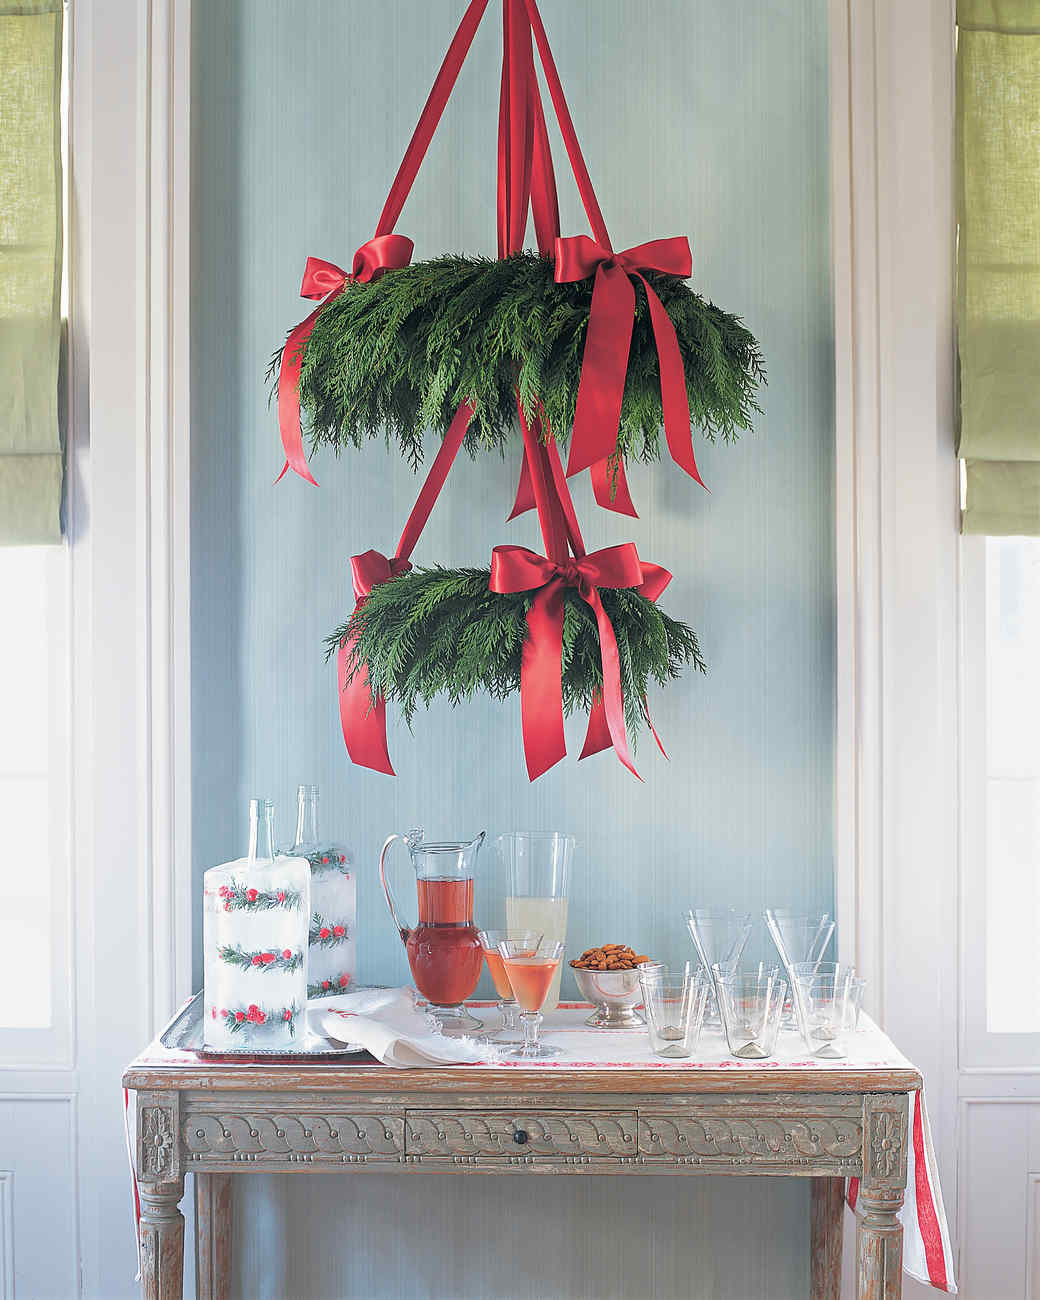 The 24 Best Ideas for Diy Christmas Decorations Martha ...